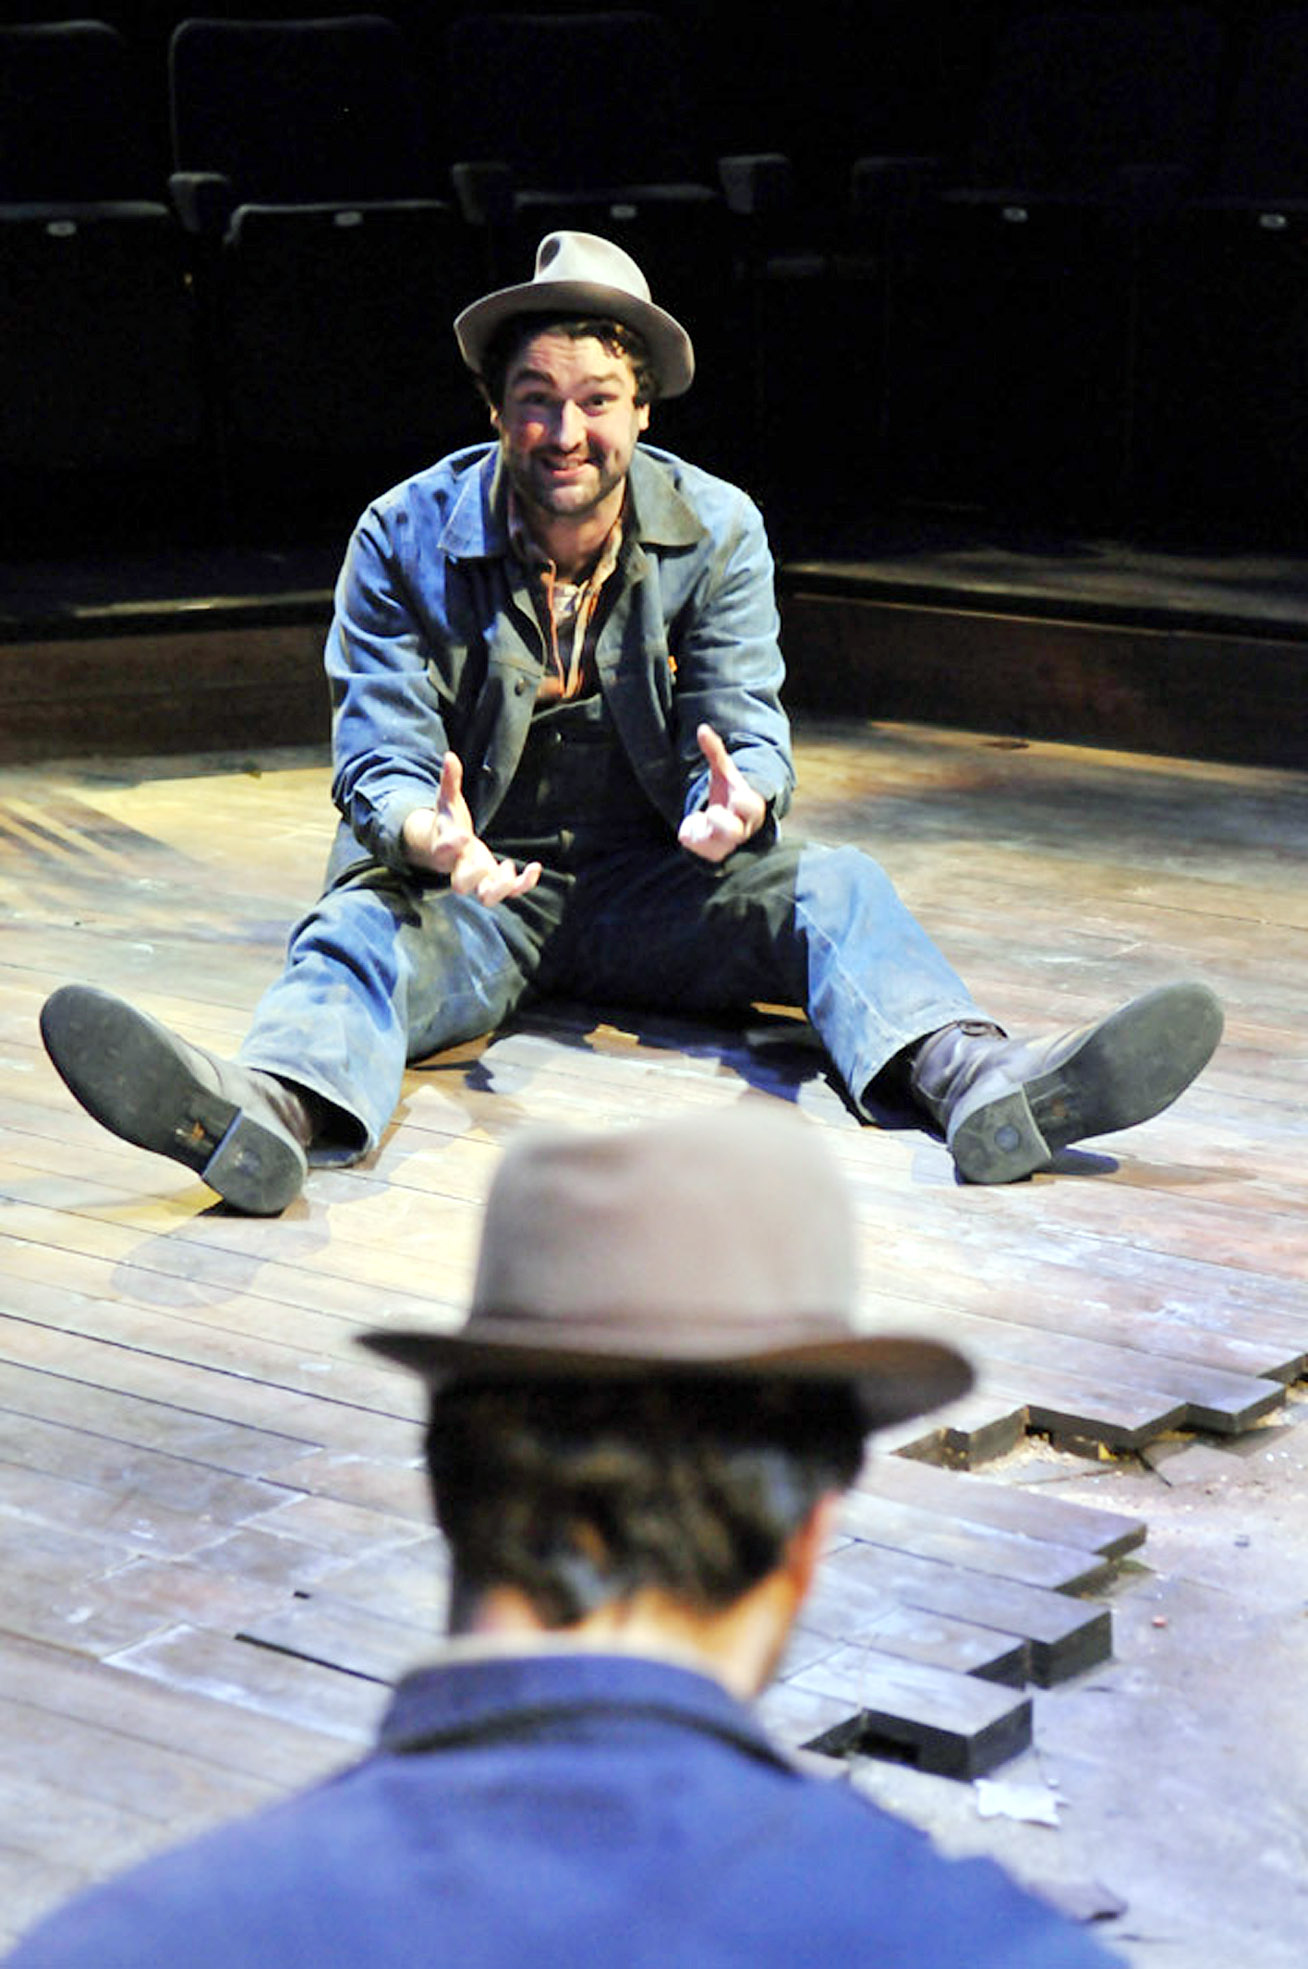 Almost 12,000 tickets were sold for Of Mice and Men